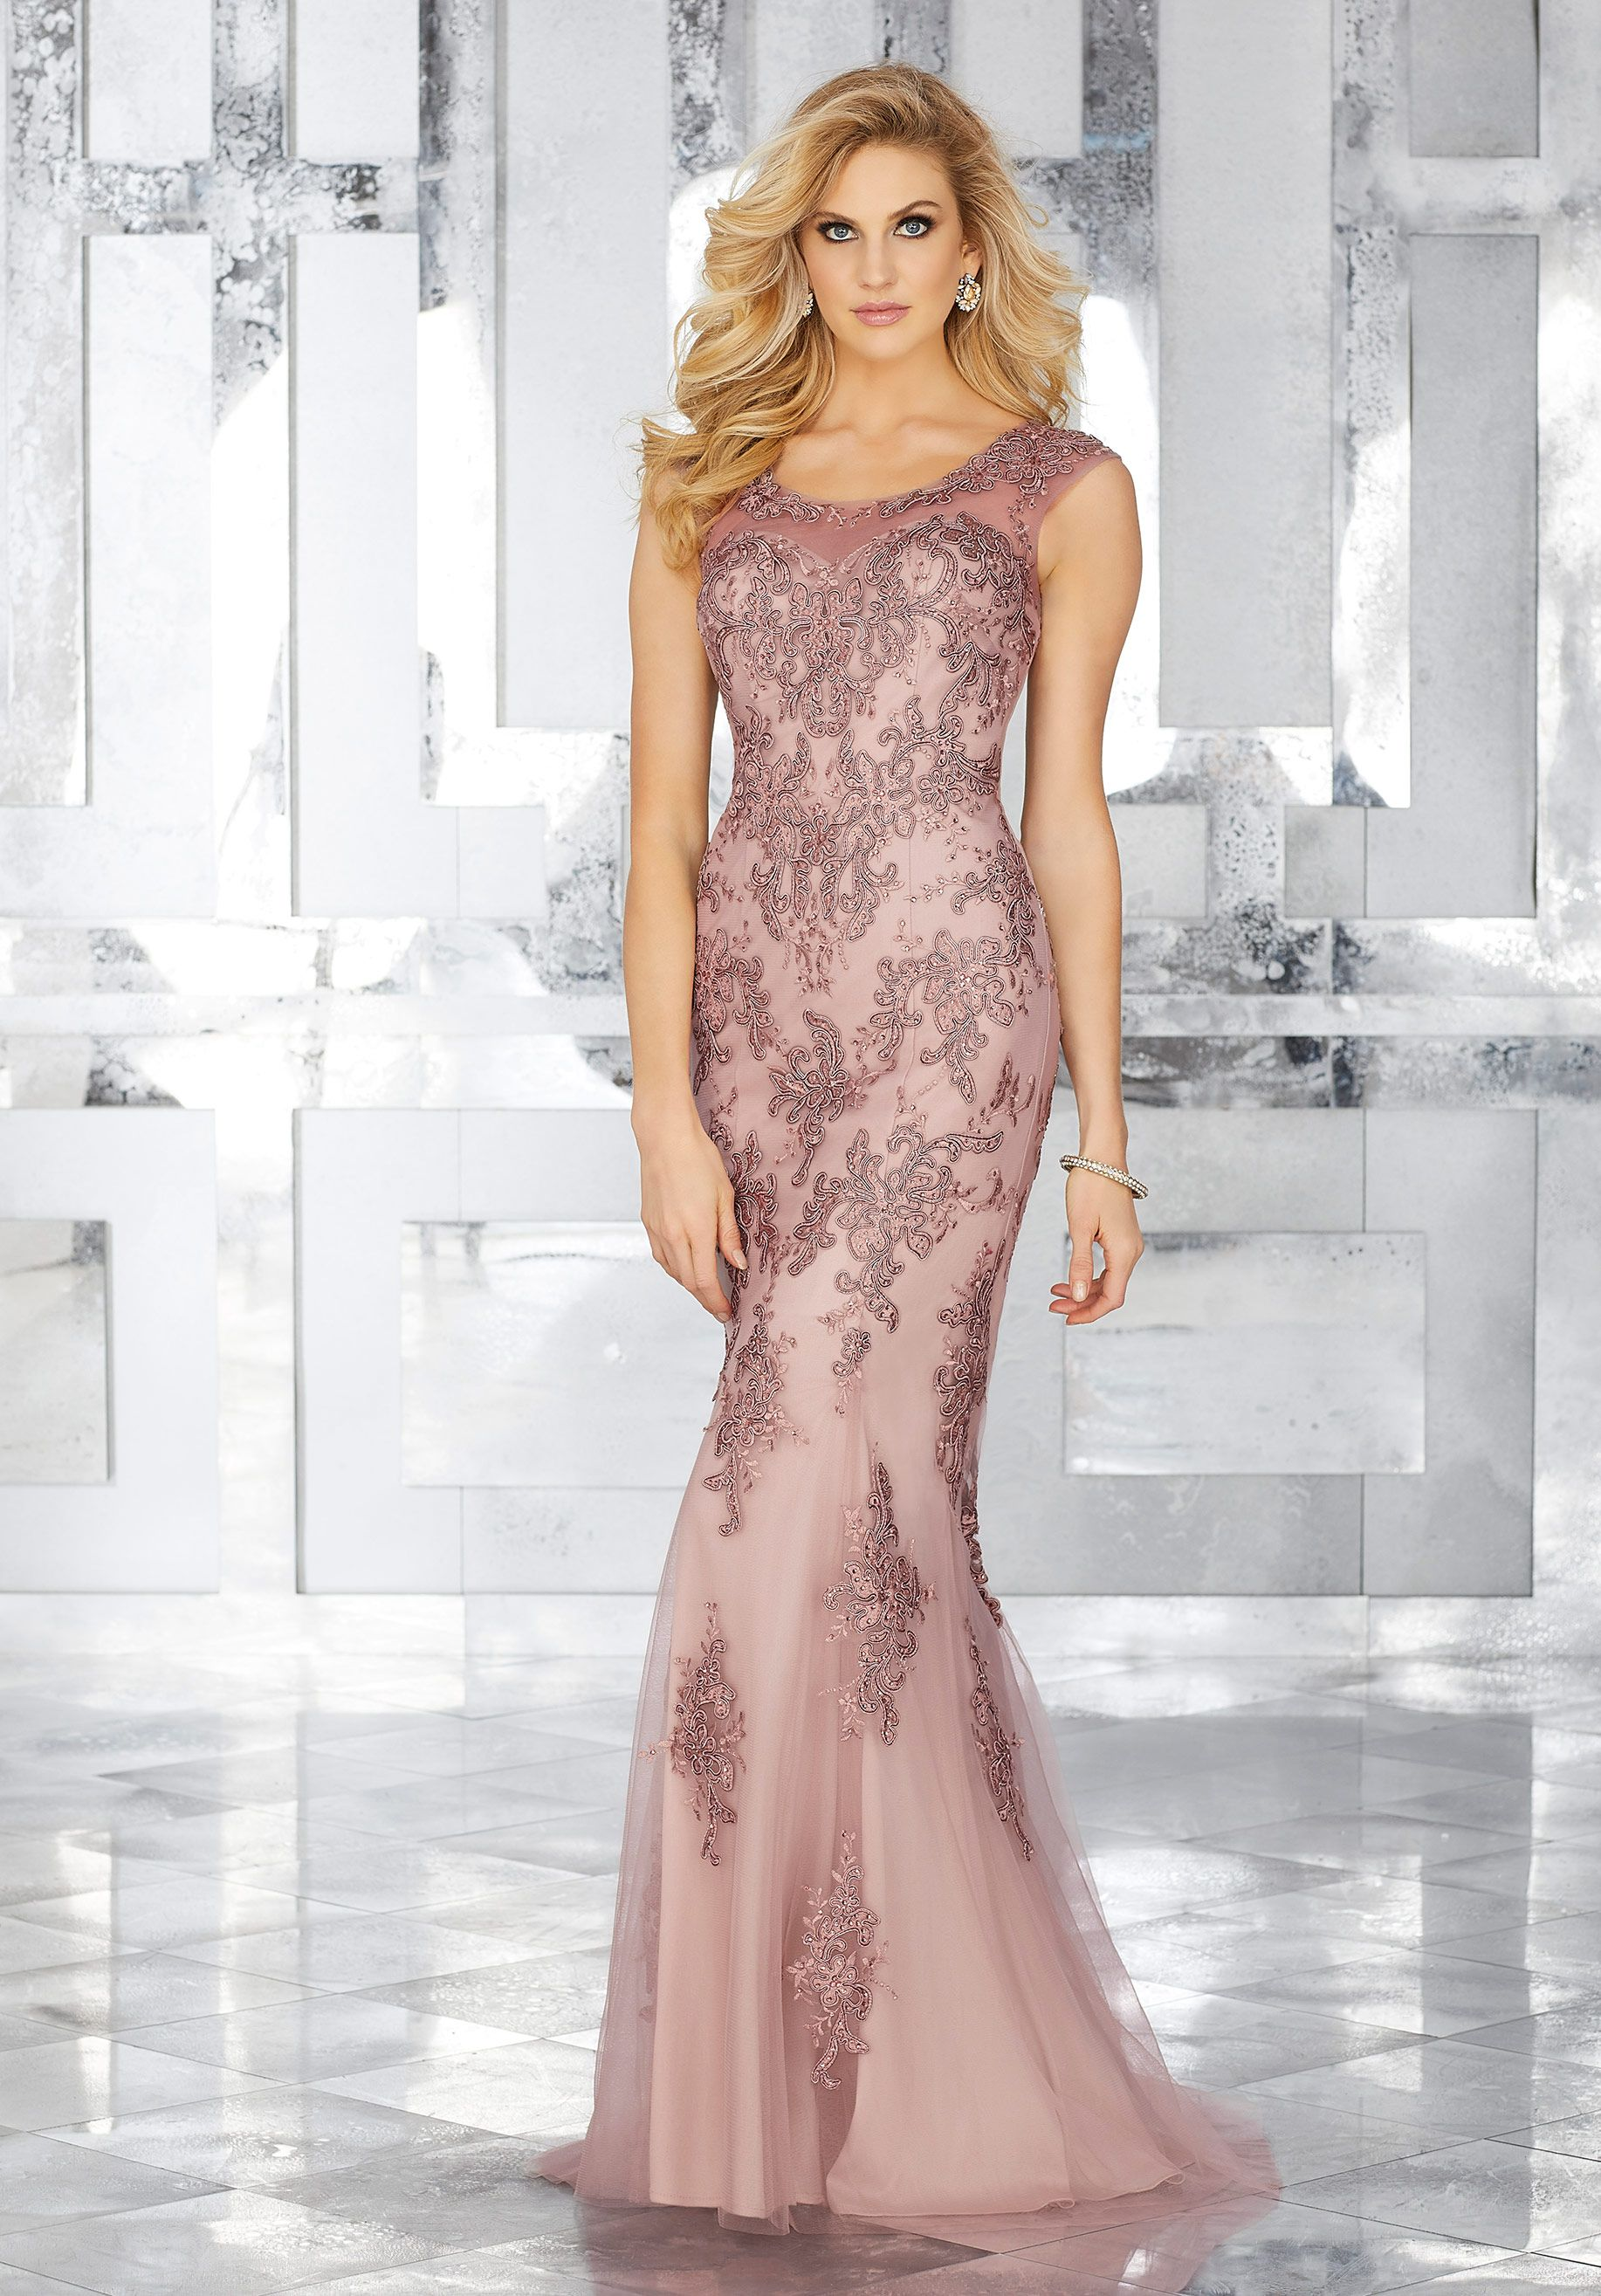 Form Fitting Special Occasion Gown Featuring Embroidered Lace ...